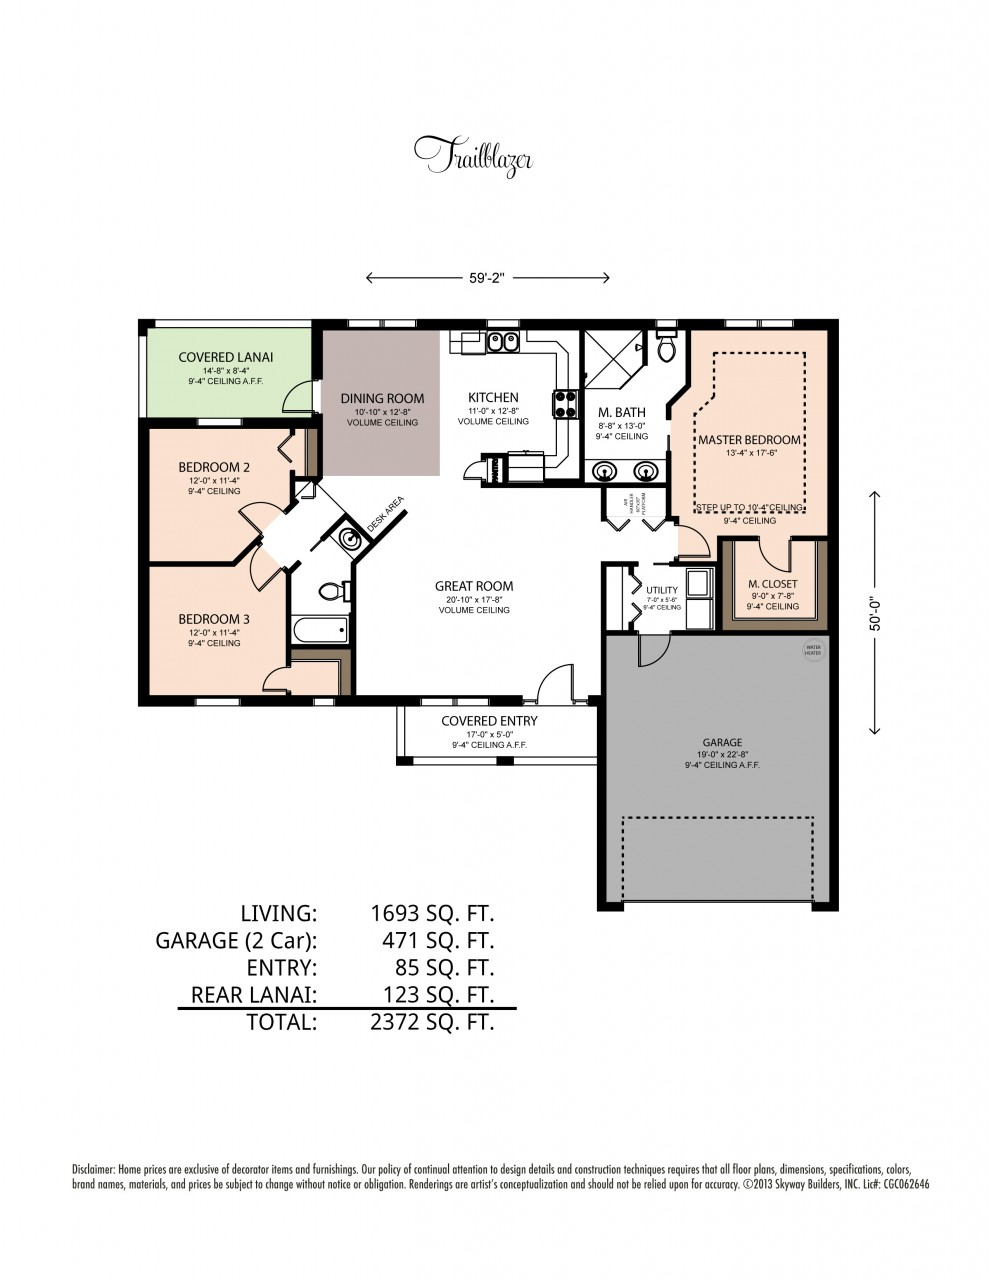 Custom floor plan of the Trailblazer with 2372 square feet